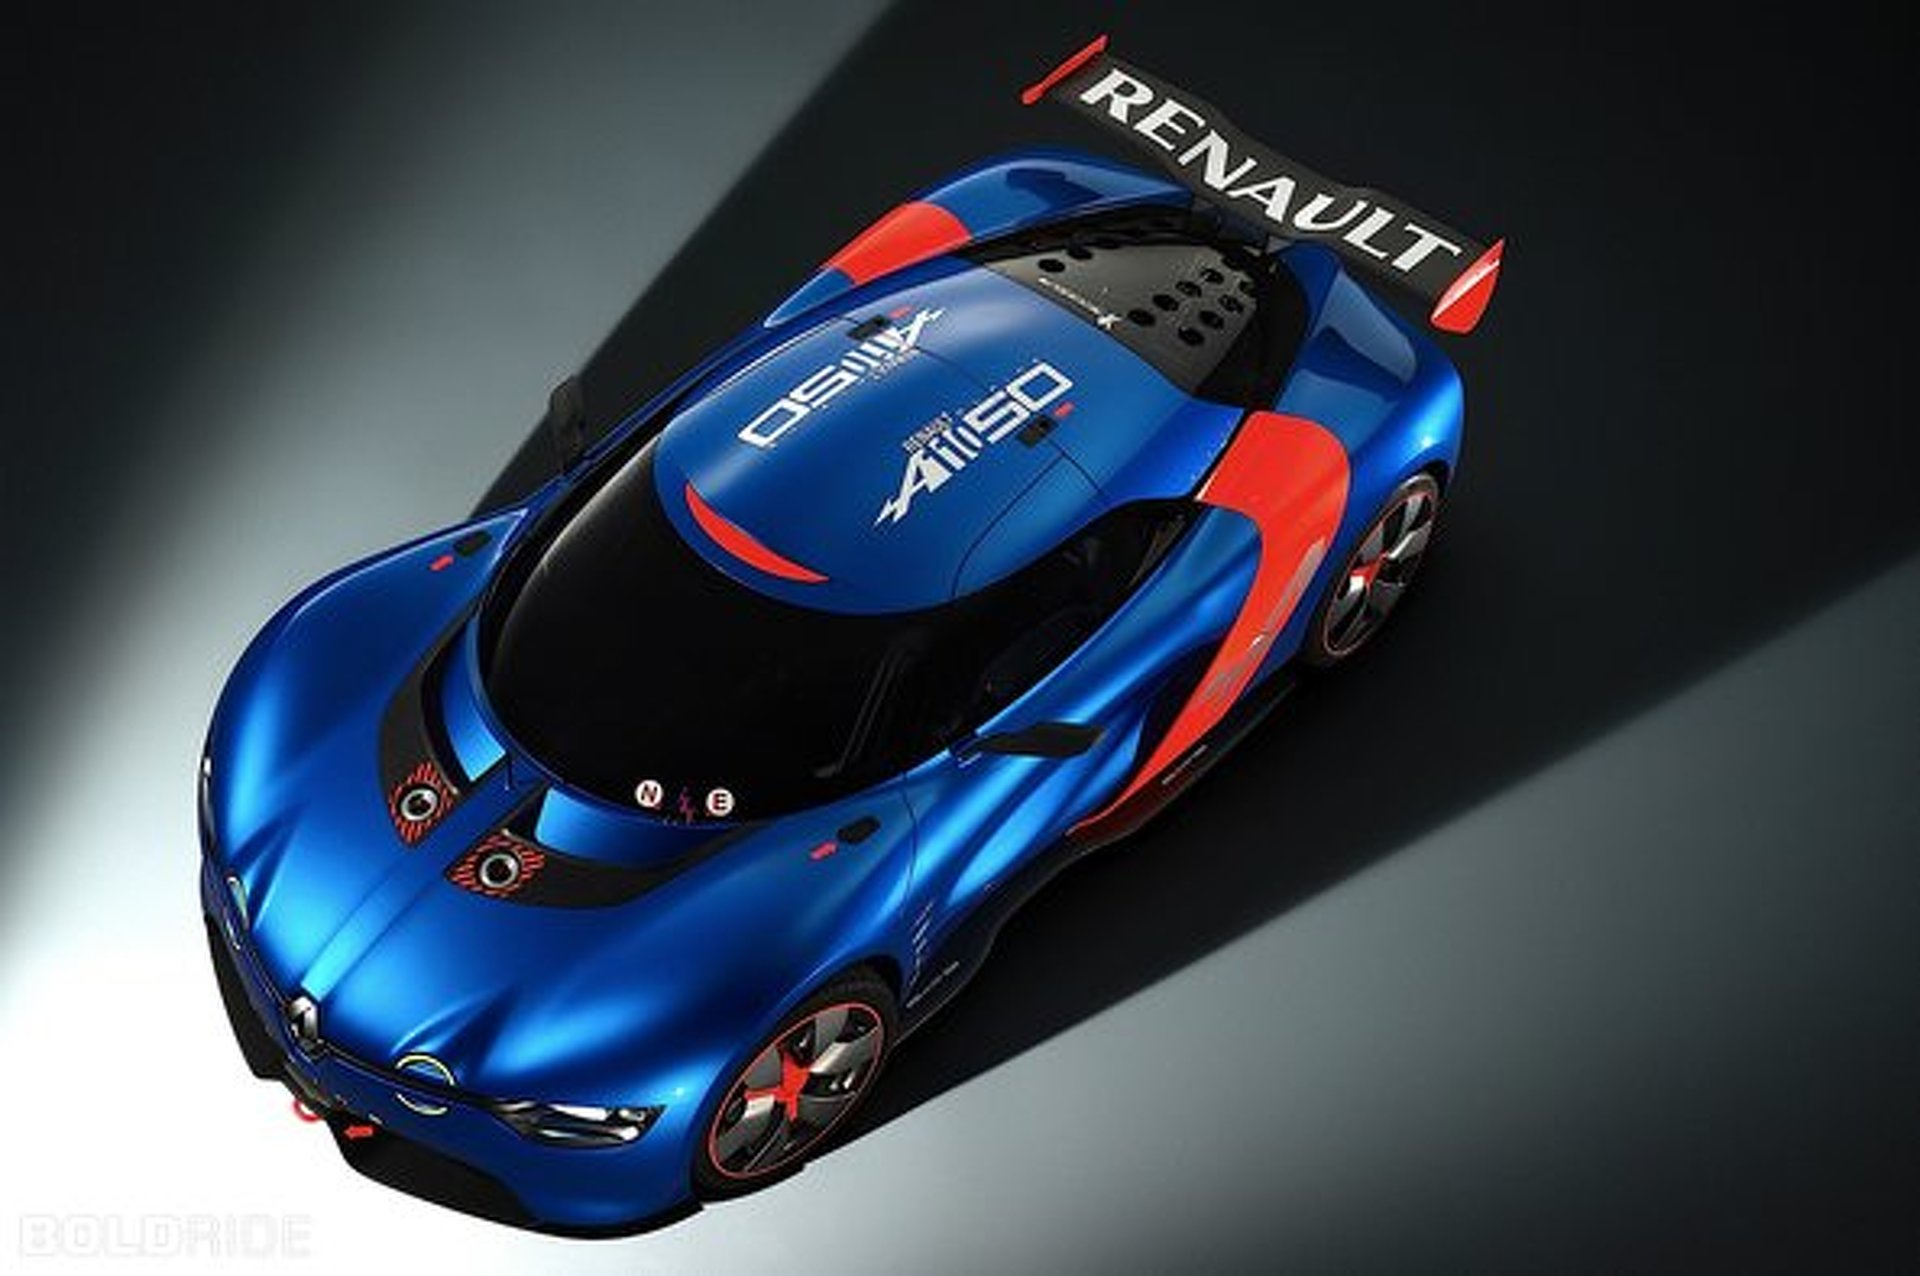 Wheels Wallpaper: Renault Alpine A110-50 Concept